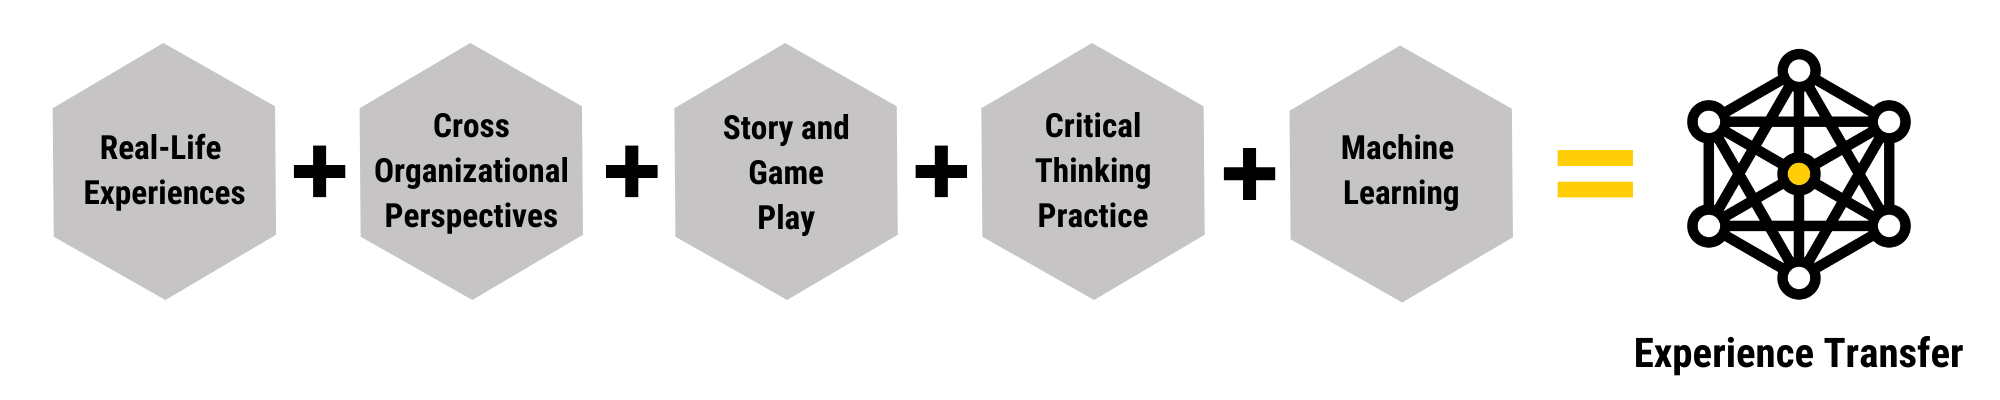 Real Life Experiences + Cross Organizational Perspectives + Game Learning + Critical Thinking Practice + Machine Learning = Experience Transfer